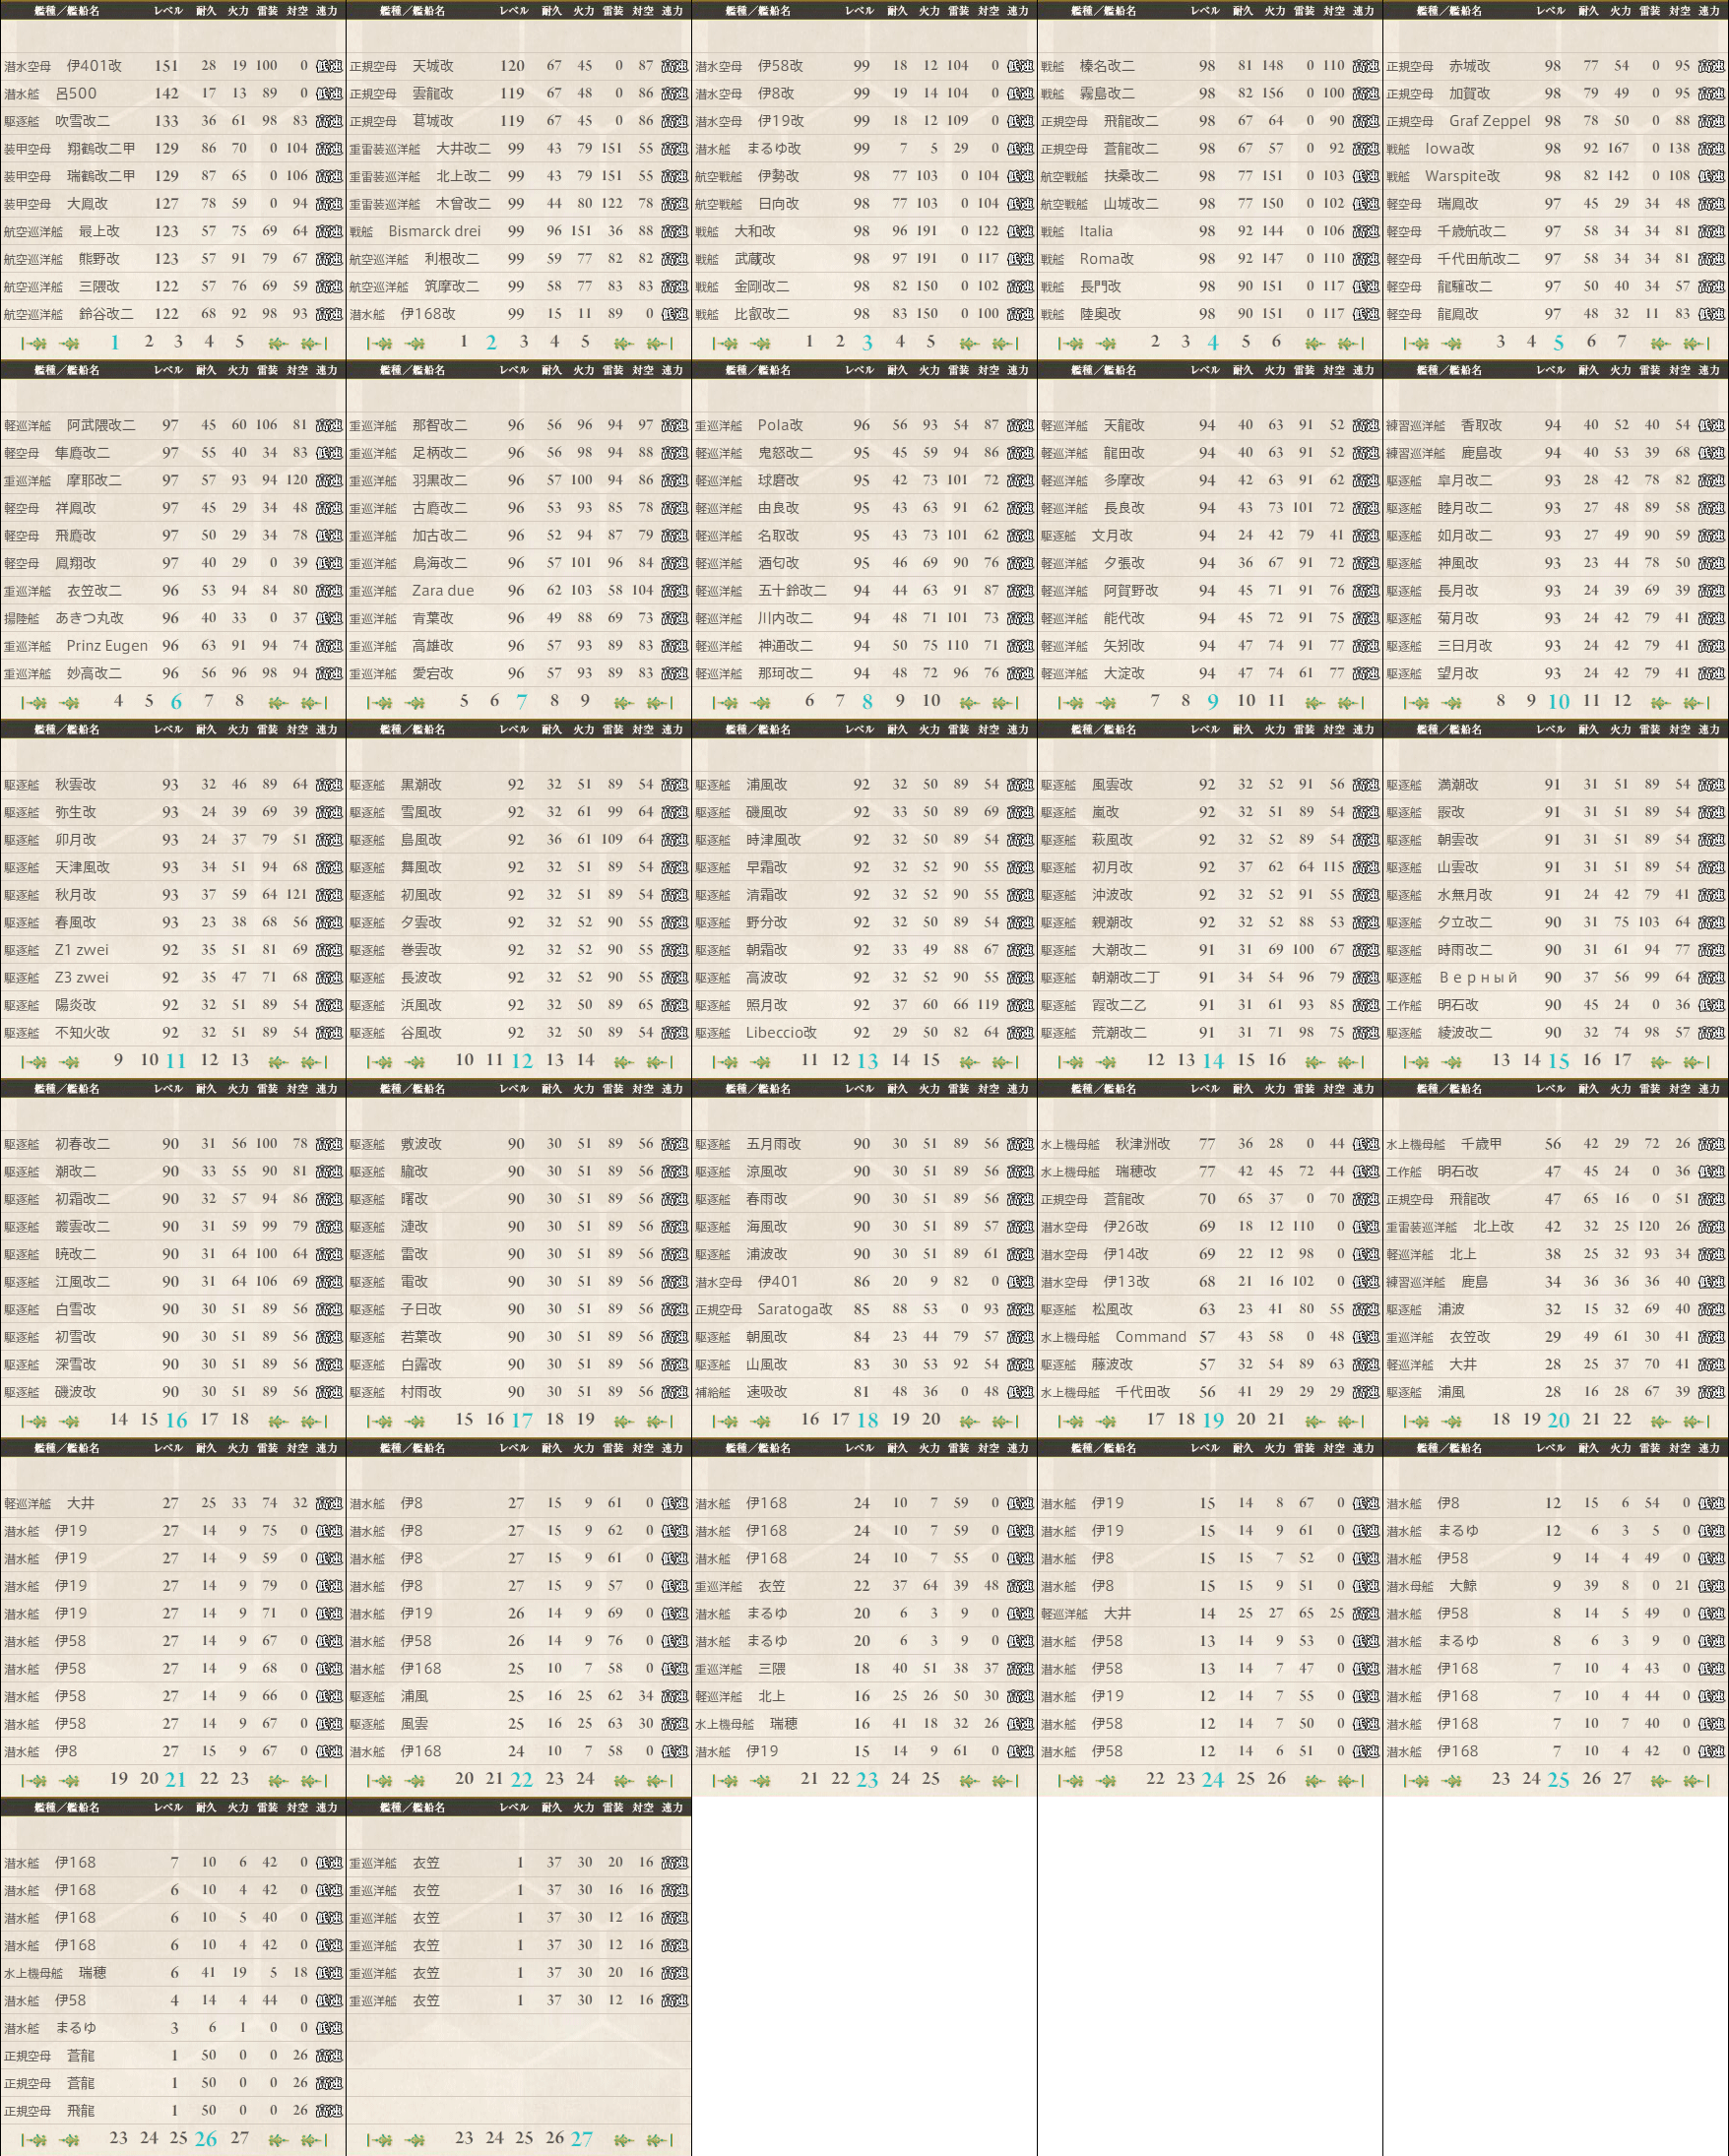 data.kancolle.levelsort.20170416.png